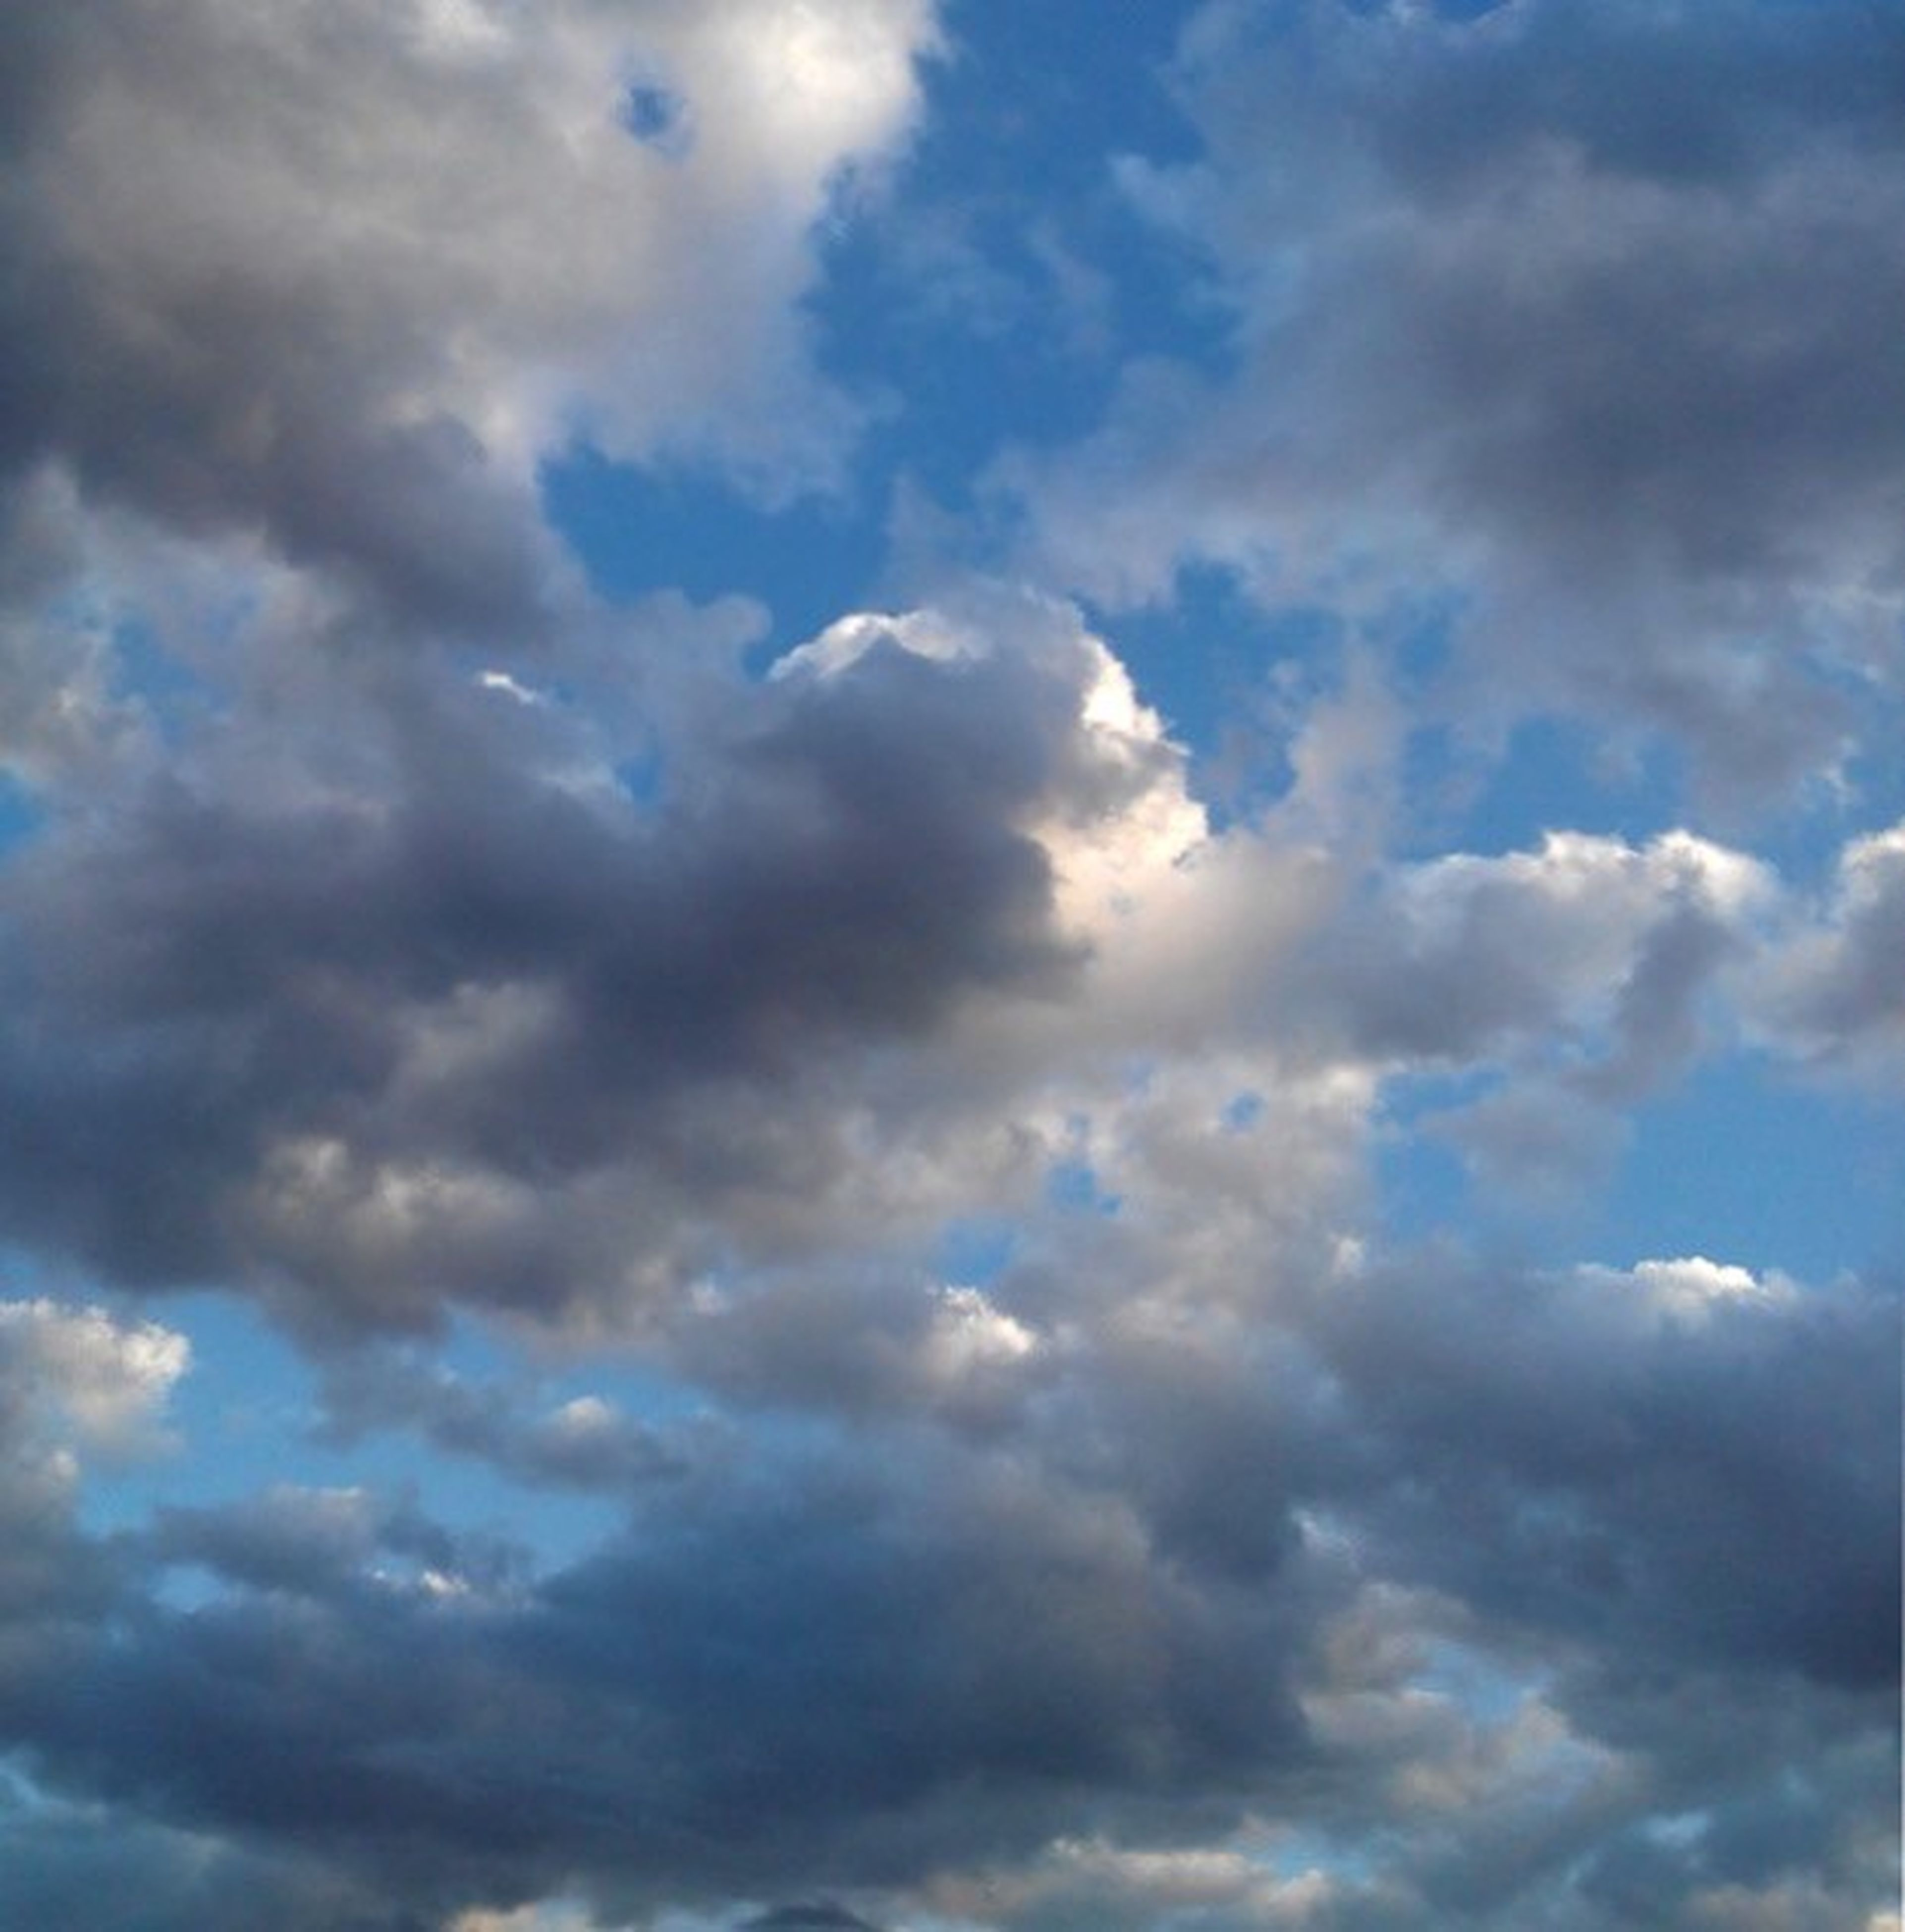 cloud - sky, sky, sky only, cloudy, low angle view, cloudscape, beauty in nature, scenics, tranquility, nature, tranquil scene, backgrounds, weather, cloud, full frame, blue, idyllic, overcast, dramatic sky, majestic